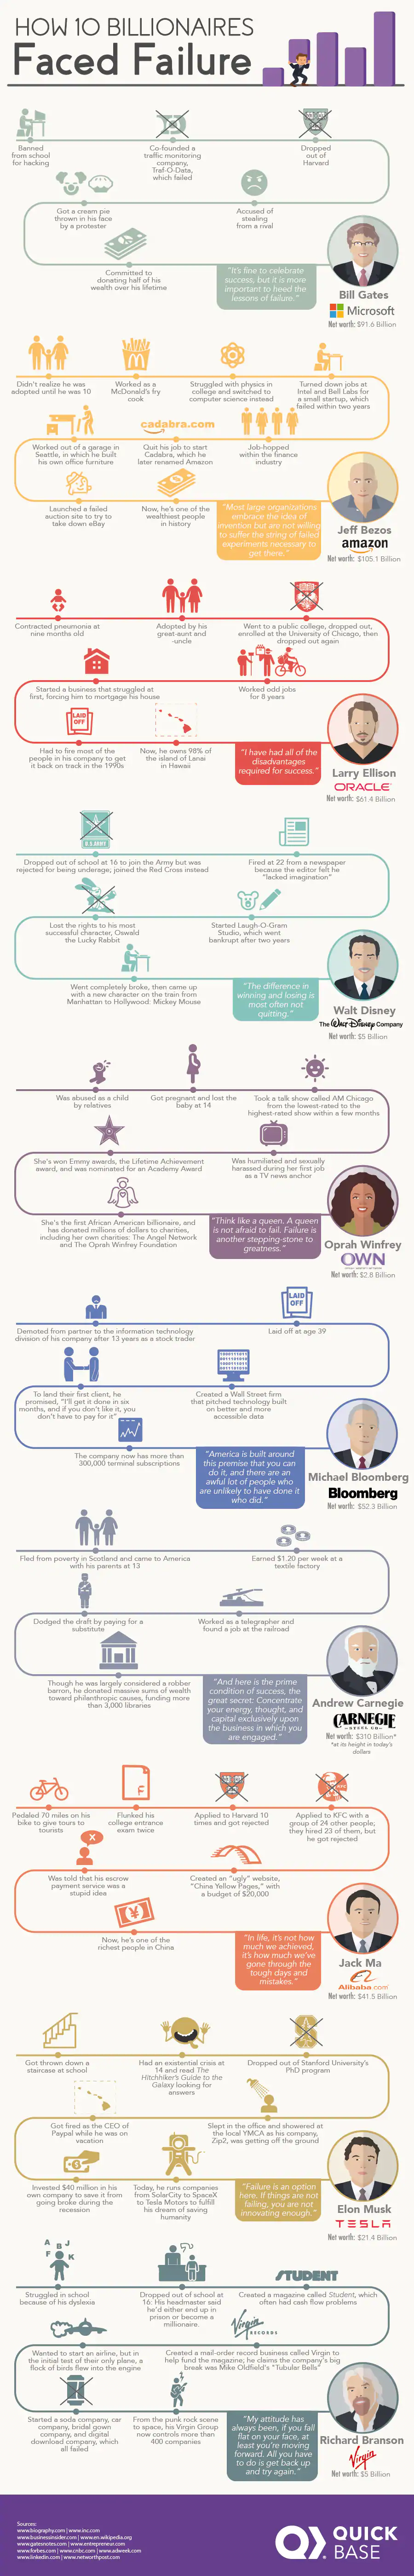 How Failure Begets Success: 10 Billionaire Case-Studies - Infographic